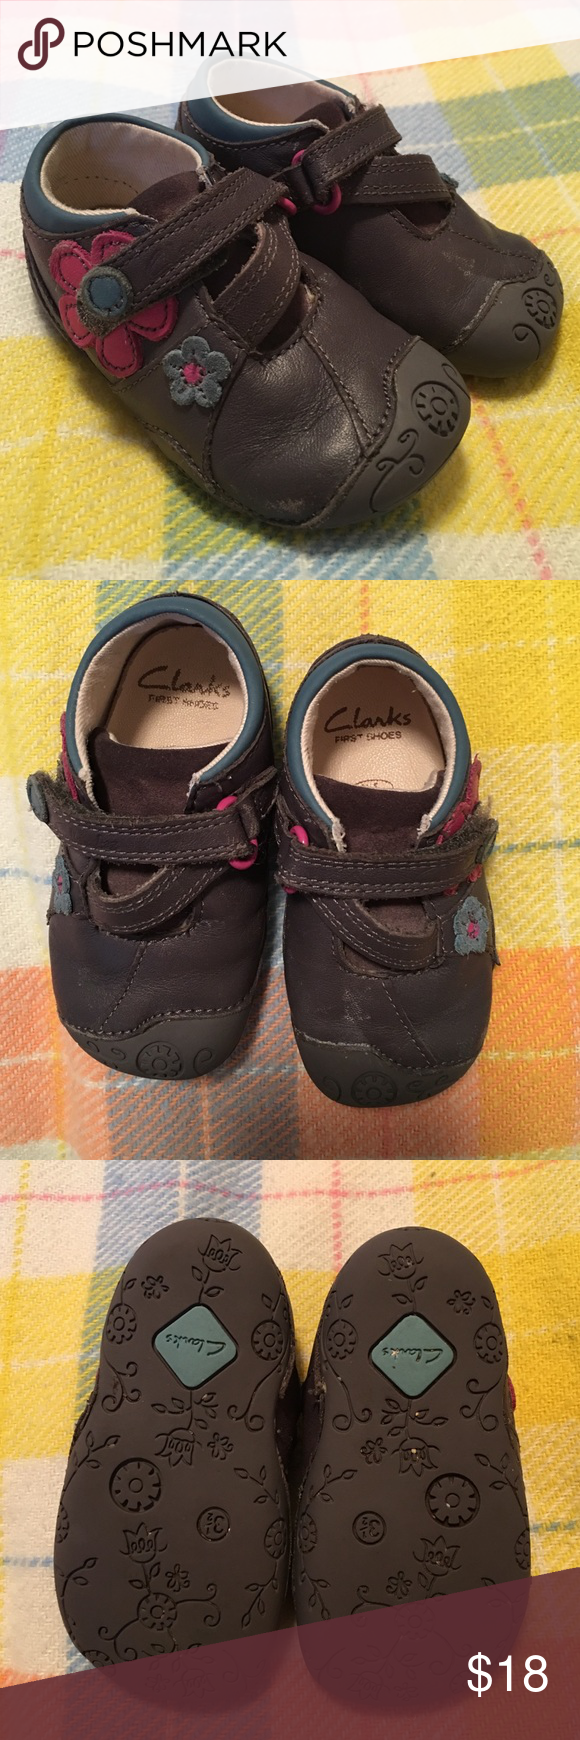 flowers These Clarks baby shoes